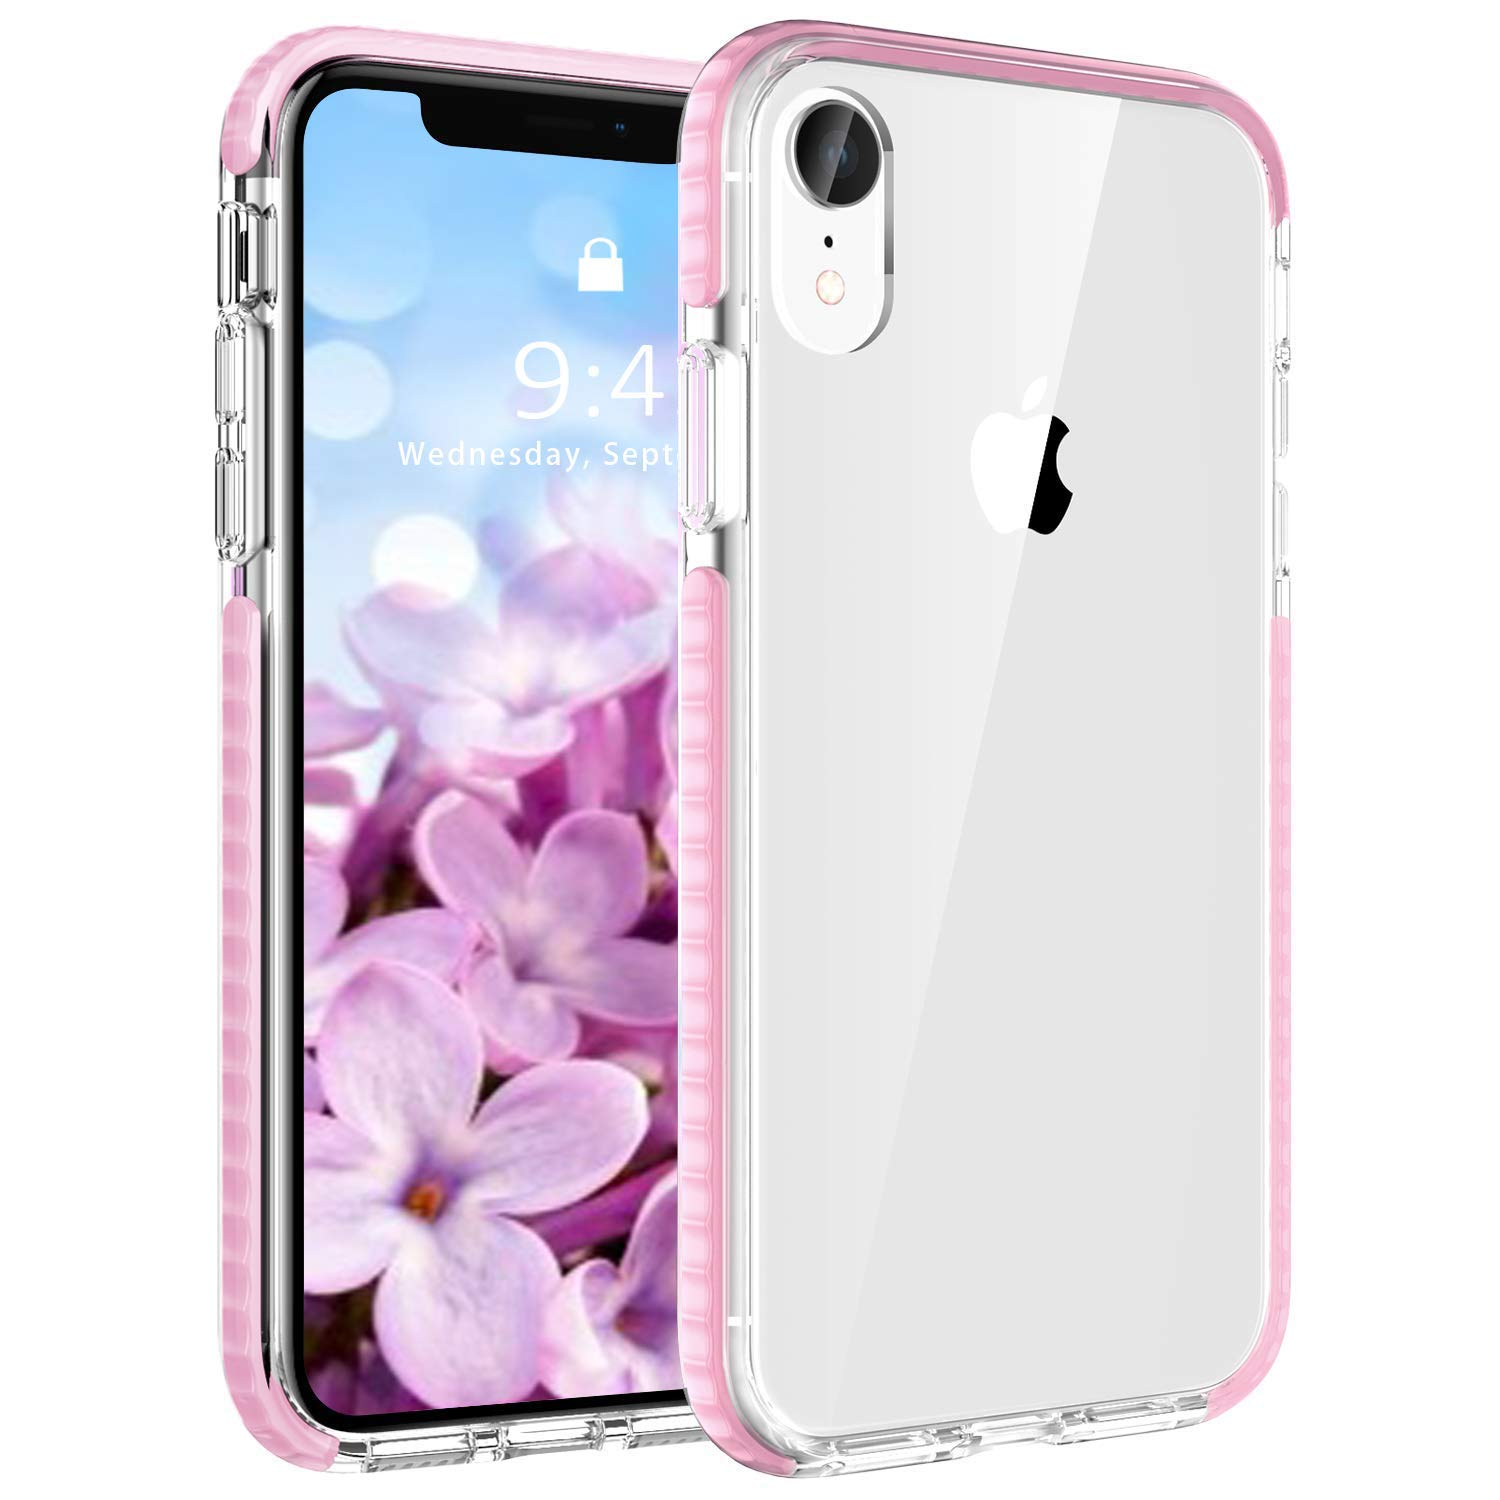 EFFENX iPhone XR Case Clear Thin Slim Anti-Yellow Heavy Duty Bumper Protective Shockproof Case for iPhone XR 6.1inch by EFFENX